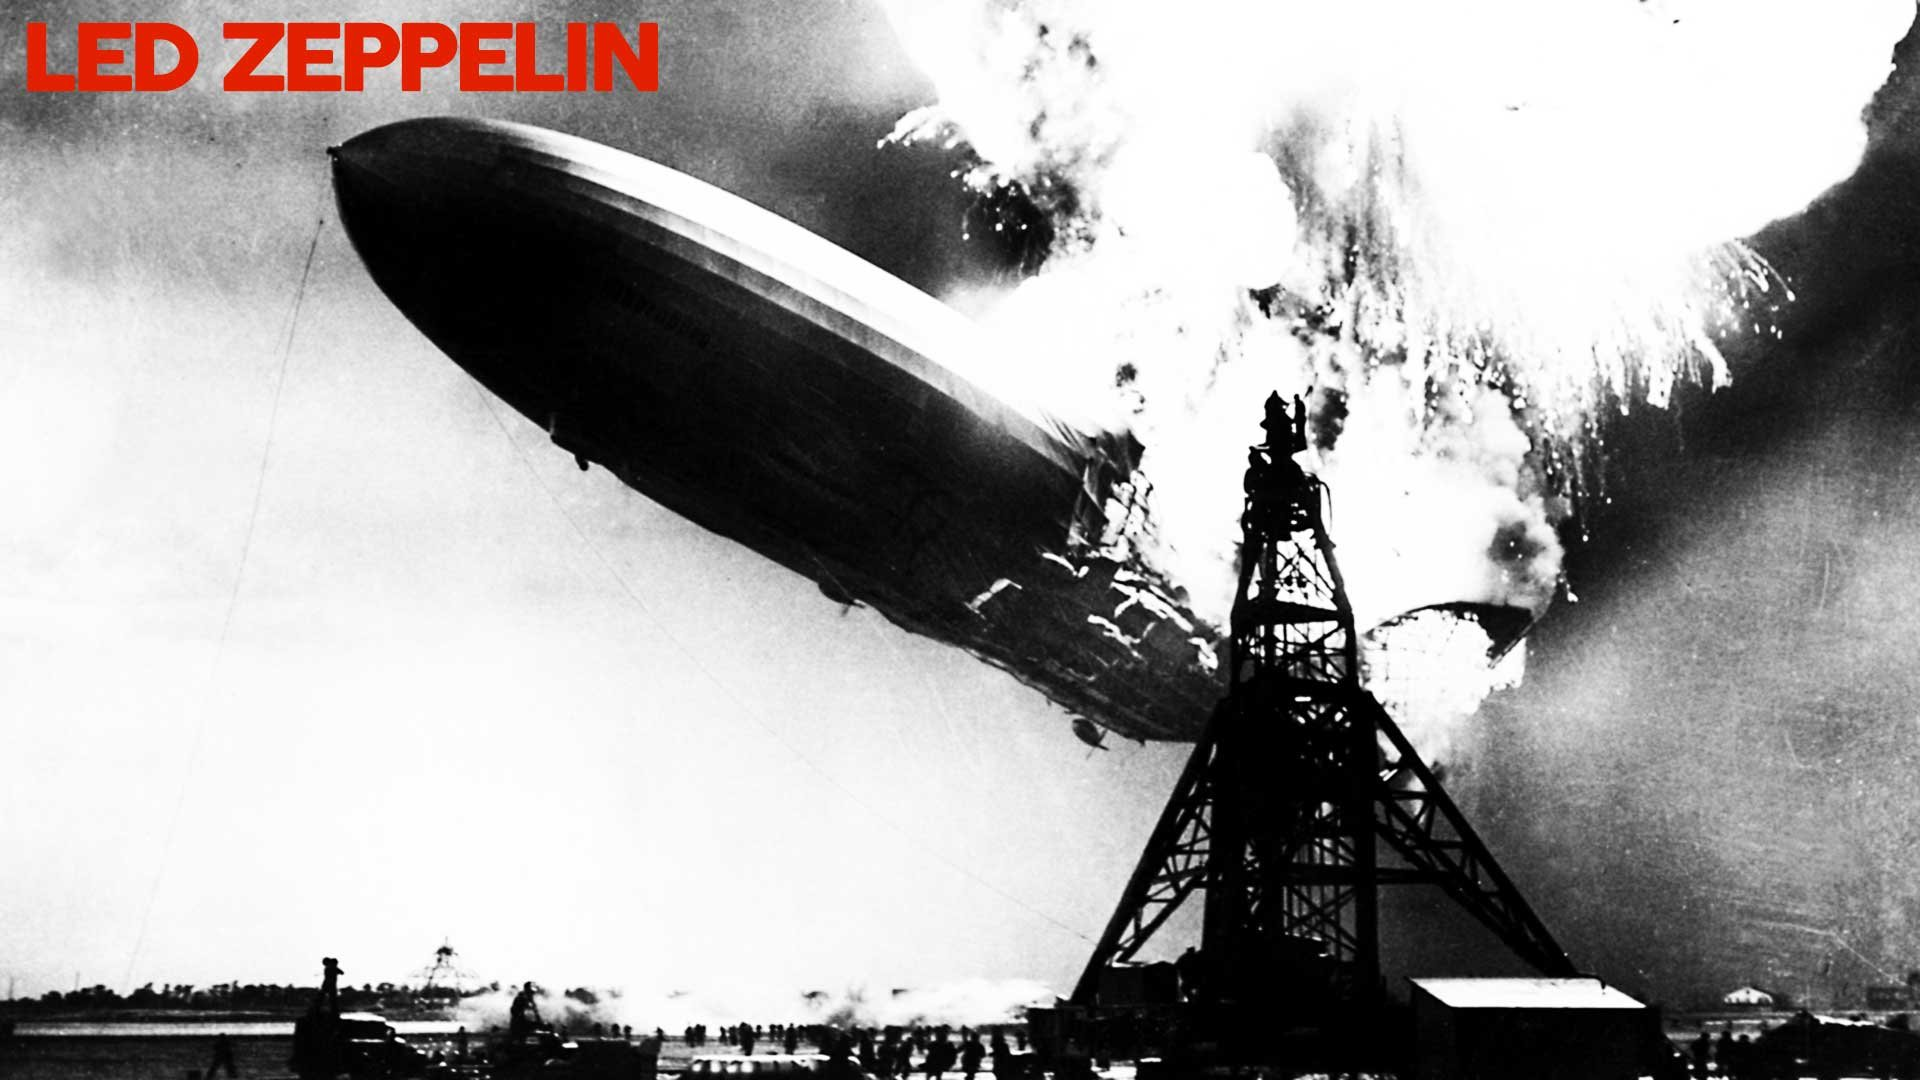 Led Zeppelin Self Titled Album Cover Hd Wallpaper